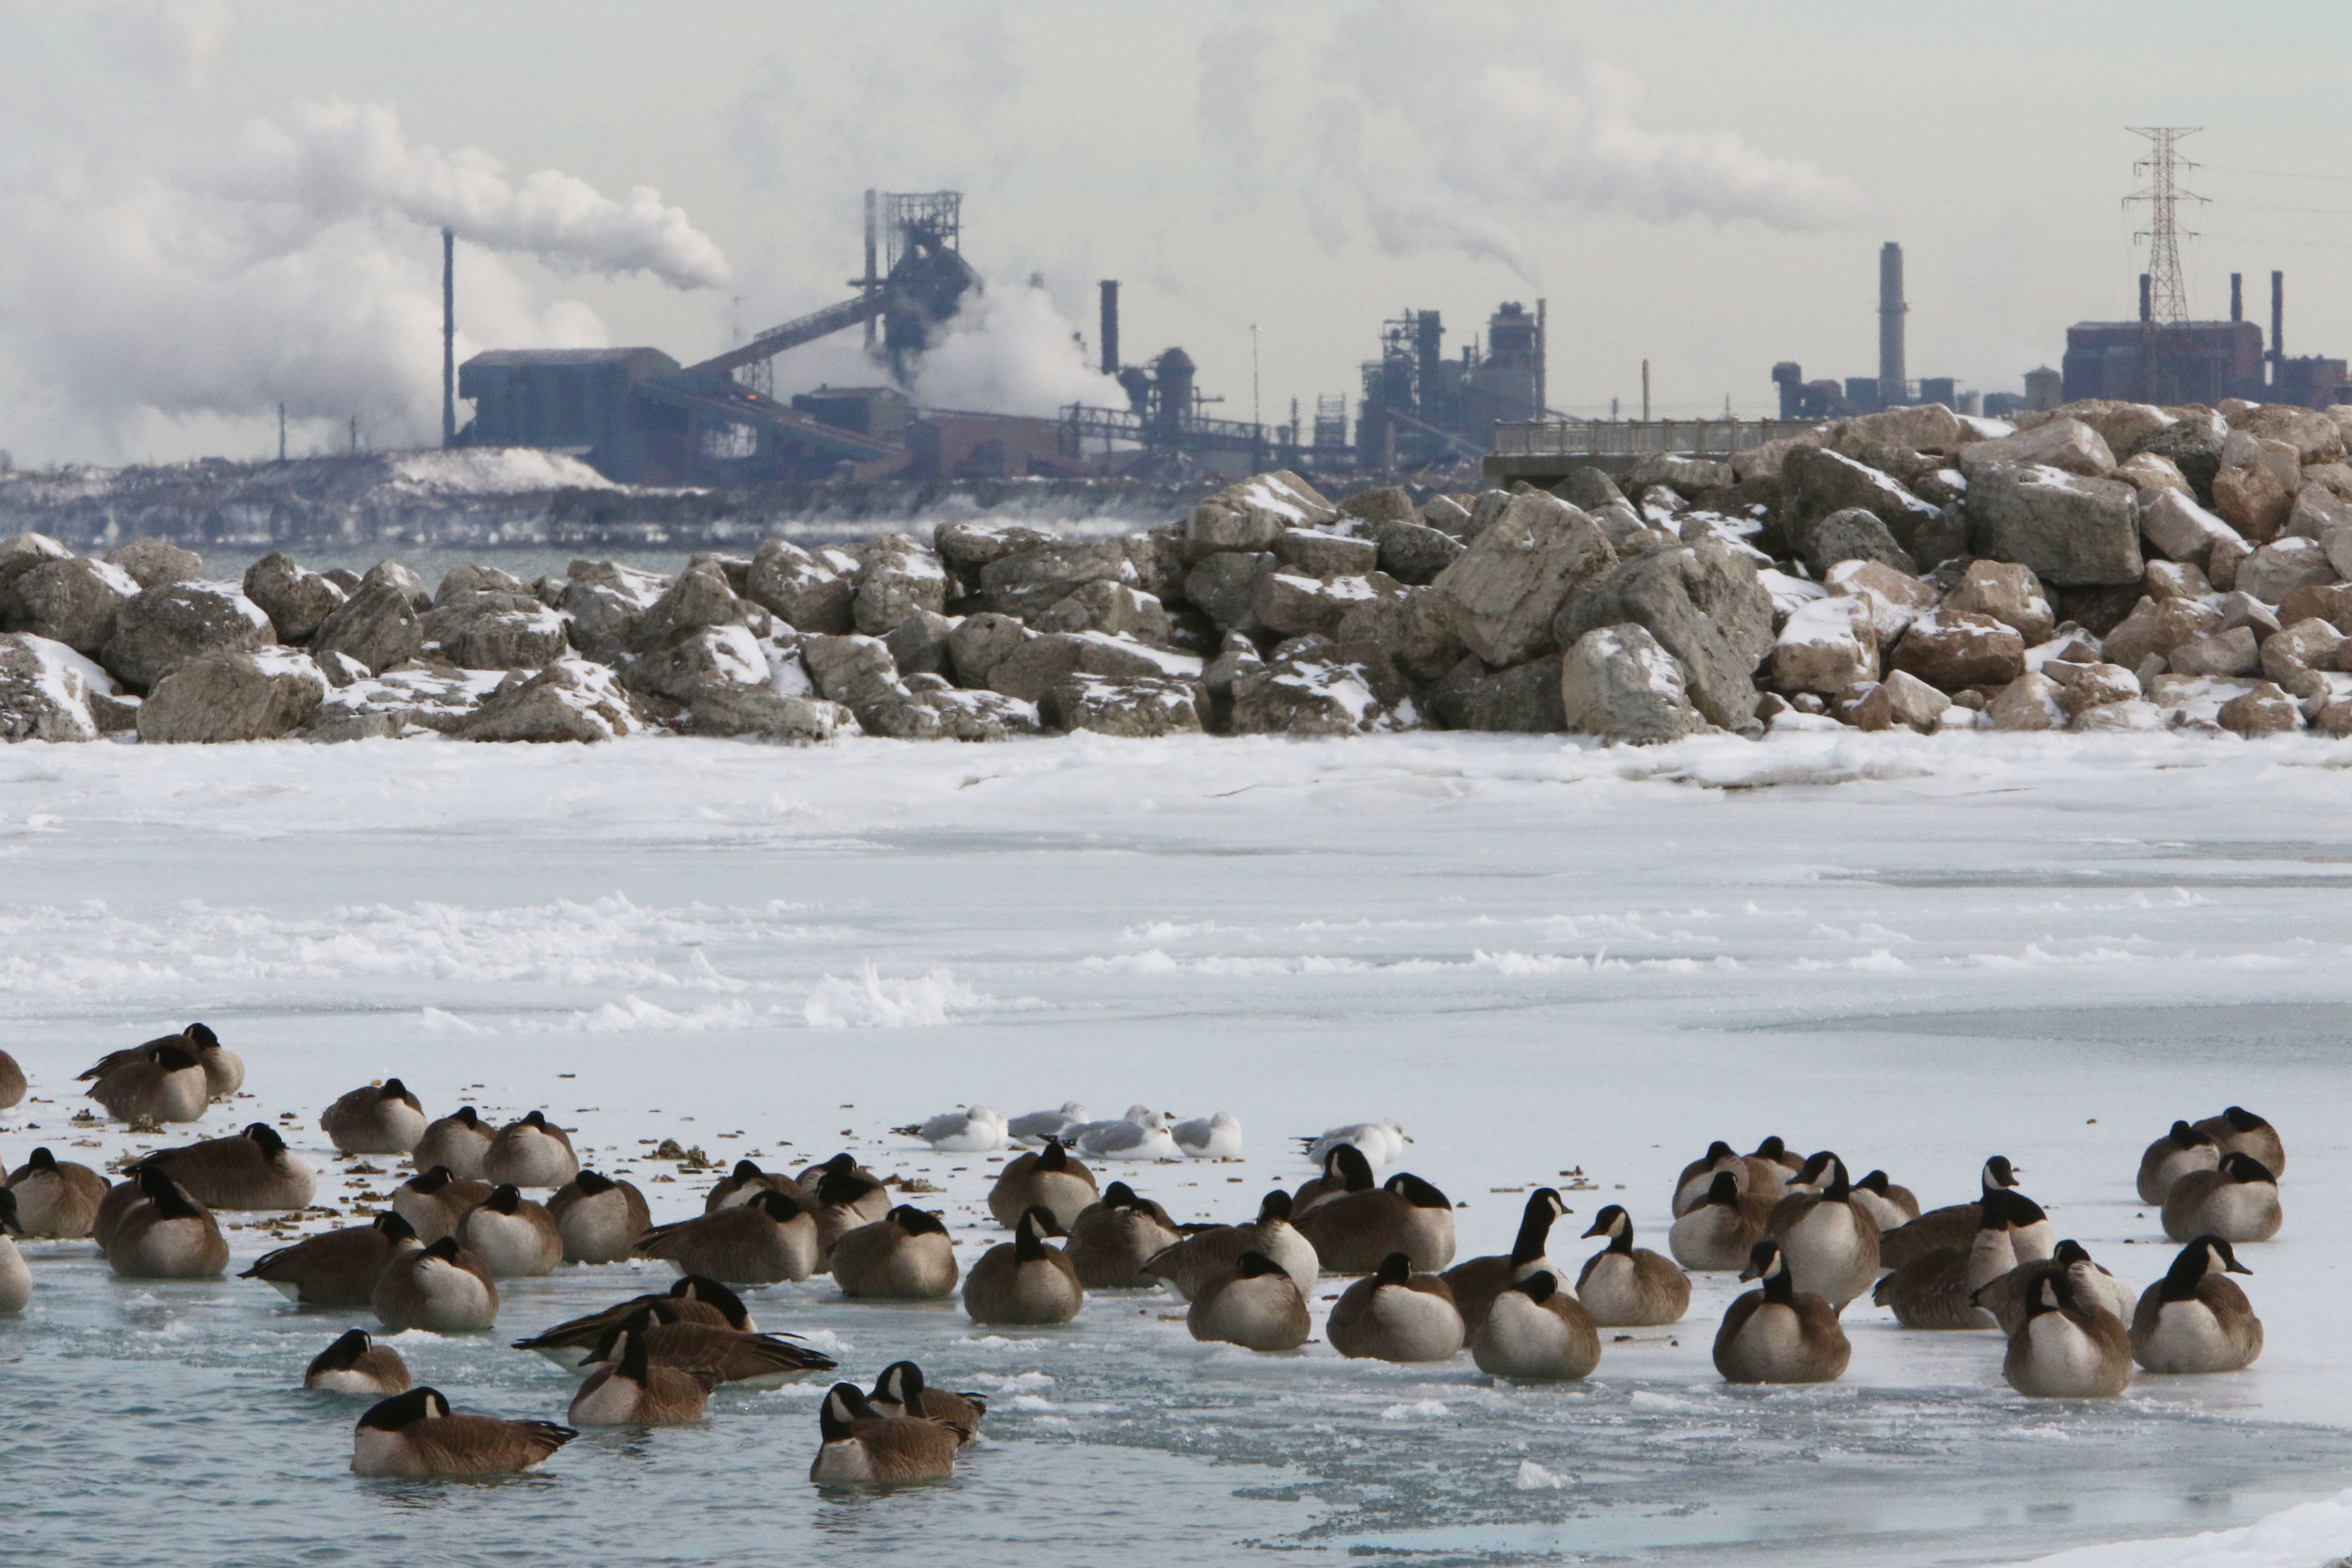 Geese and gulls congregate on ice near the docks at Whihala Beach in Whiting, Indiana.